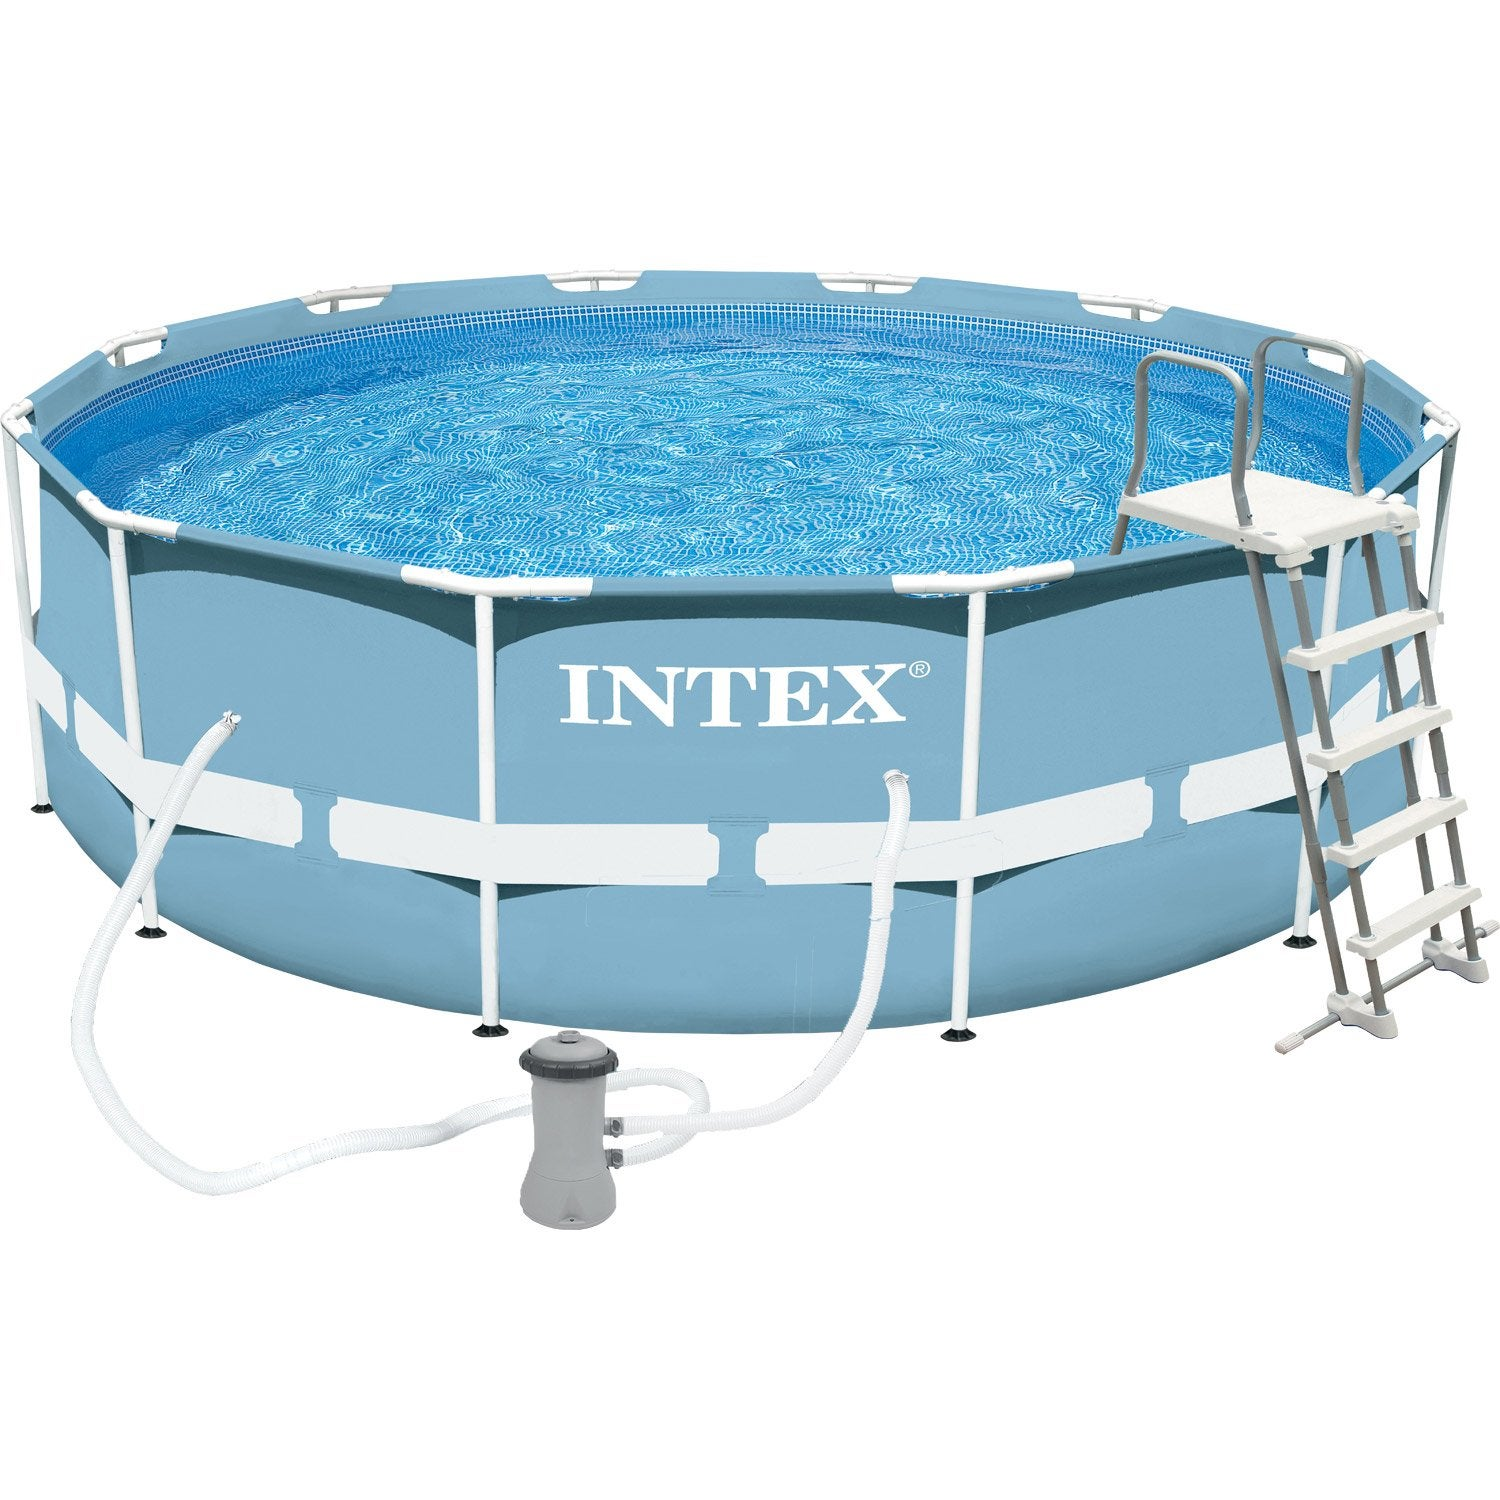 Piscine hors sol autoportante tubulaire prism frame intex for Piscine intex hors sol rectangulaire